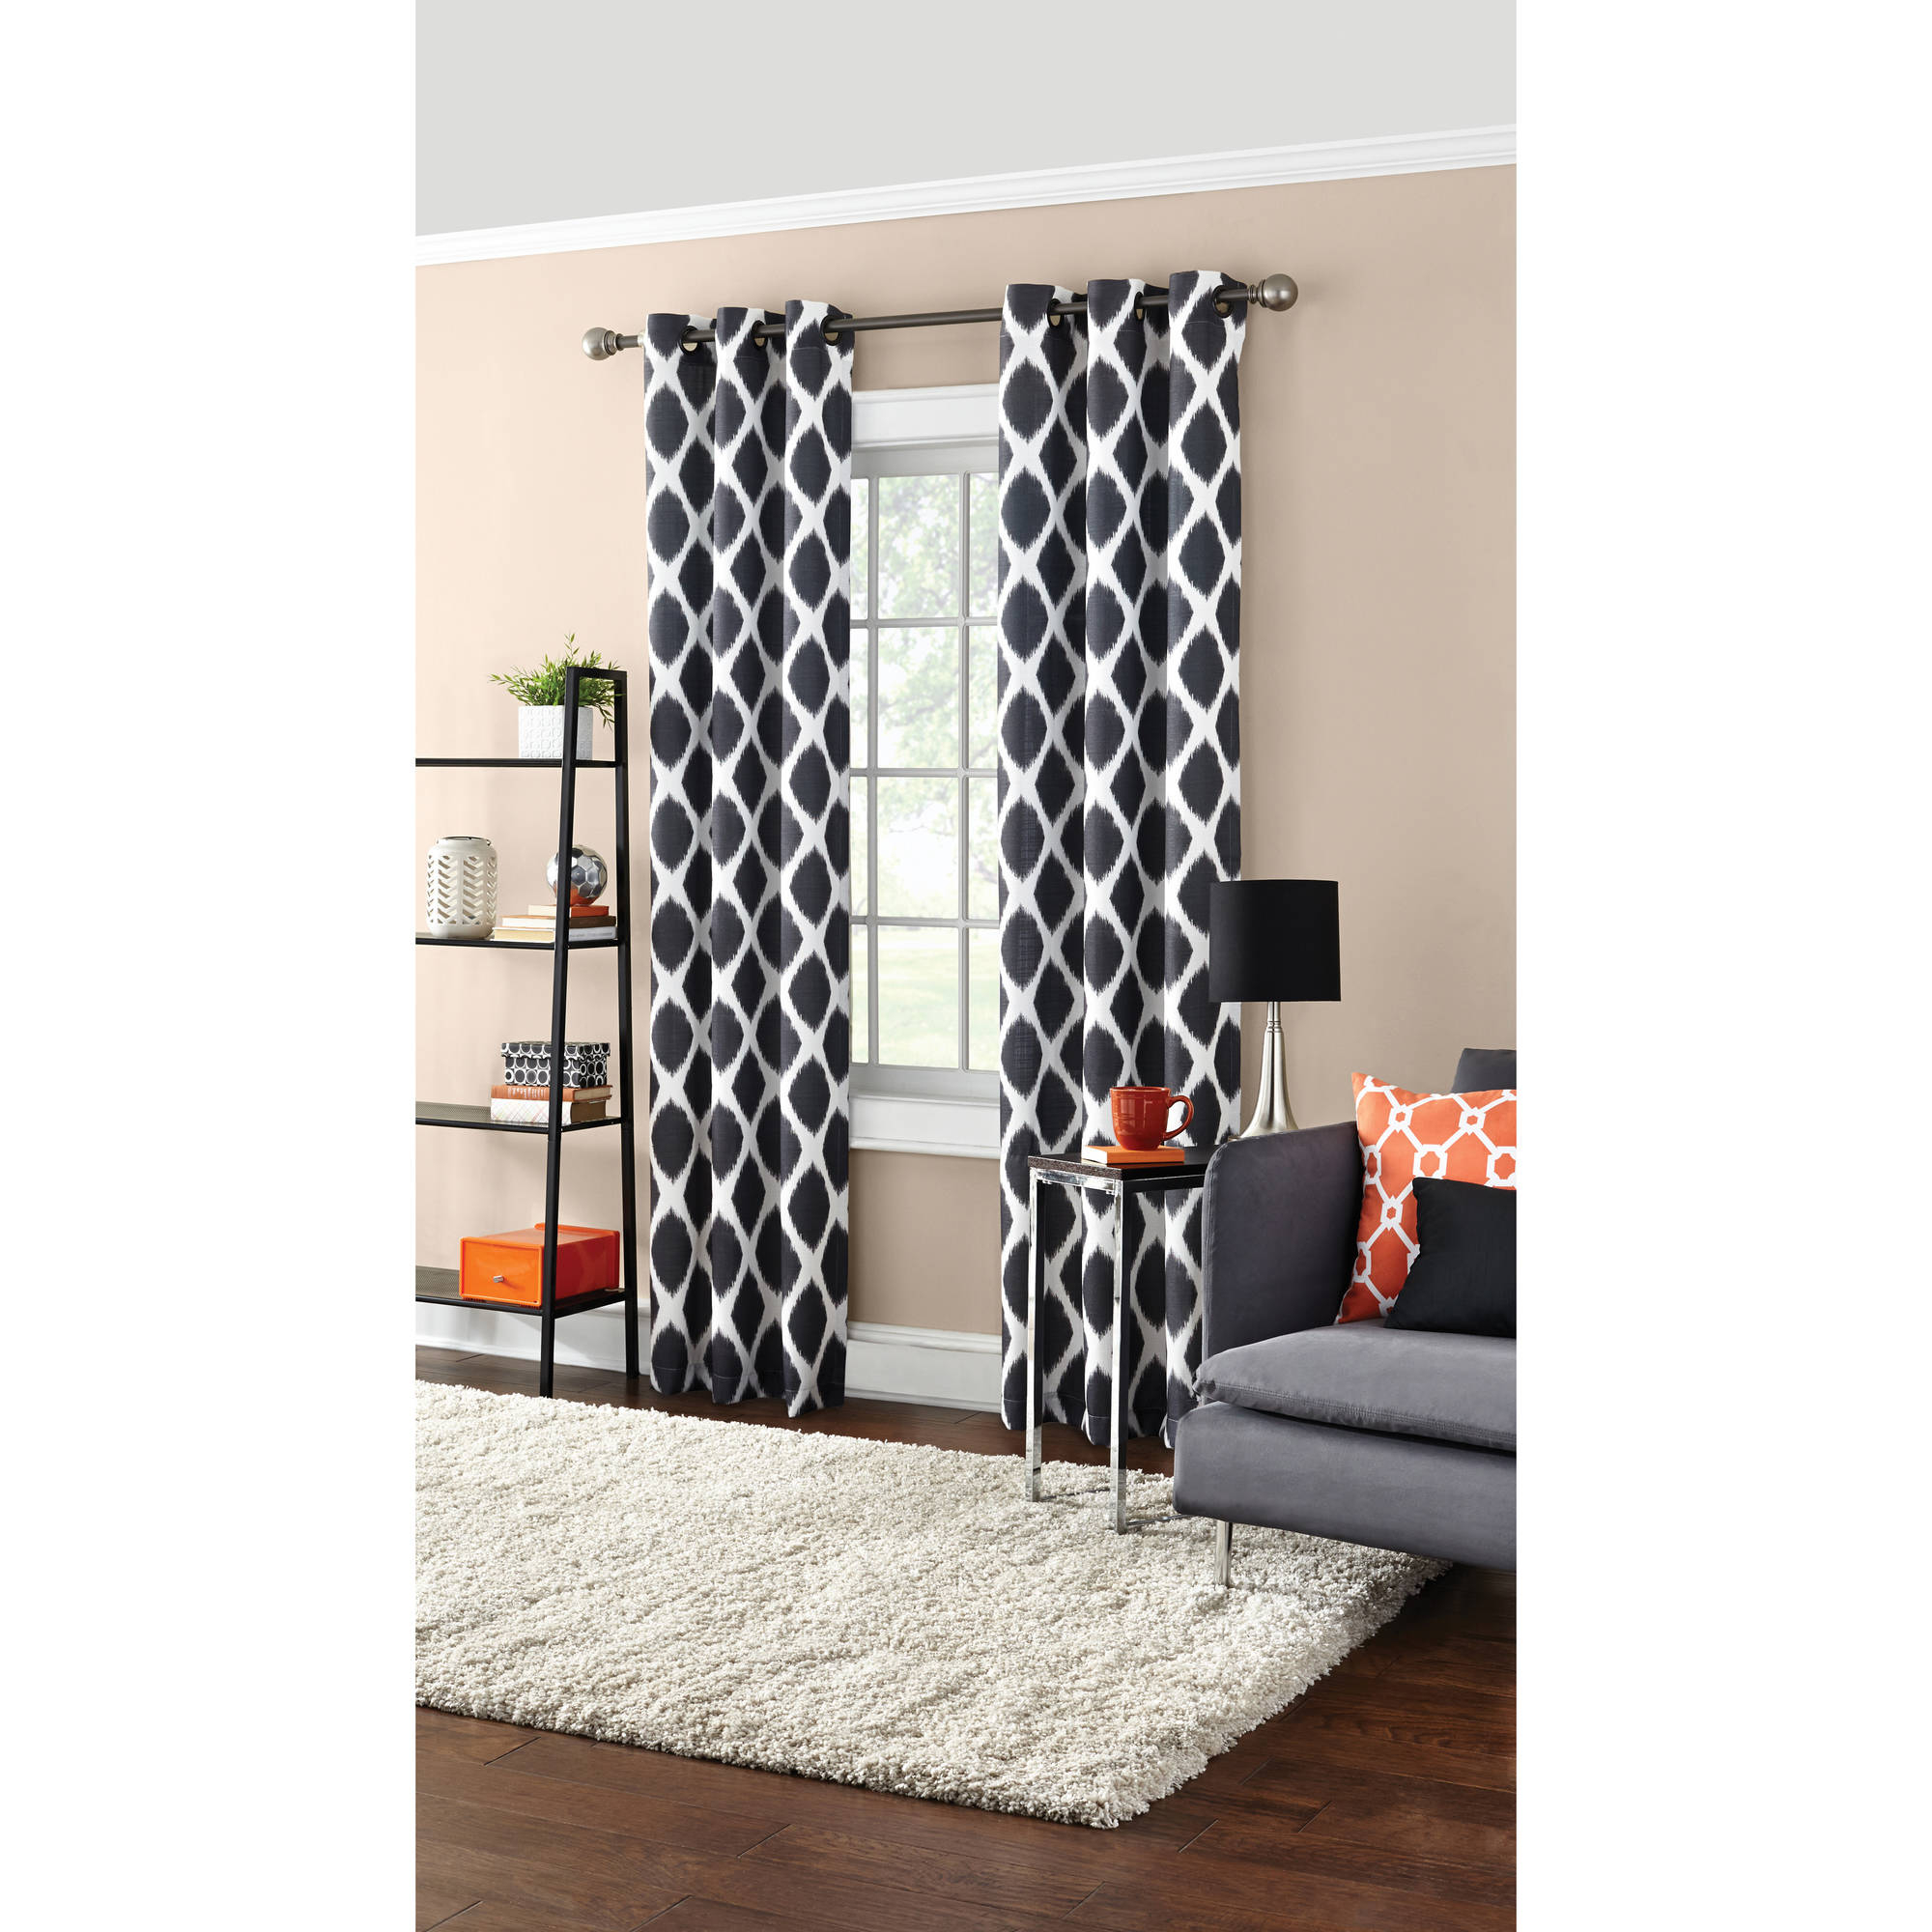 Most Recently Released Mainstays Textured Grommet Curtain Panel In Grommet Curtain Panels (Gallery 12 of 20)